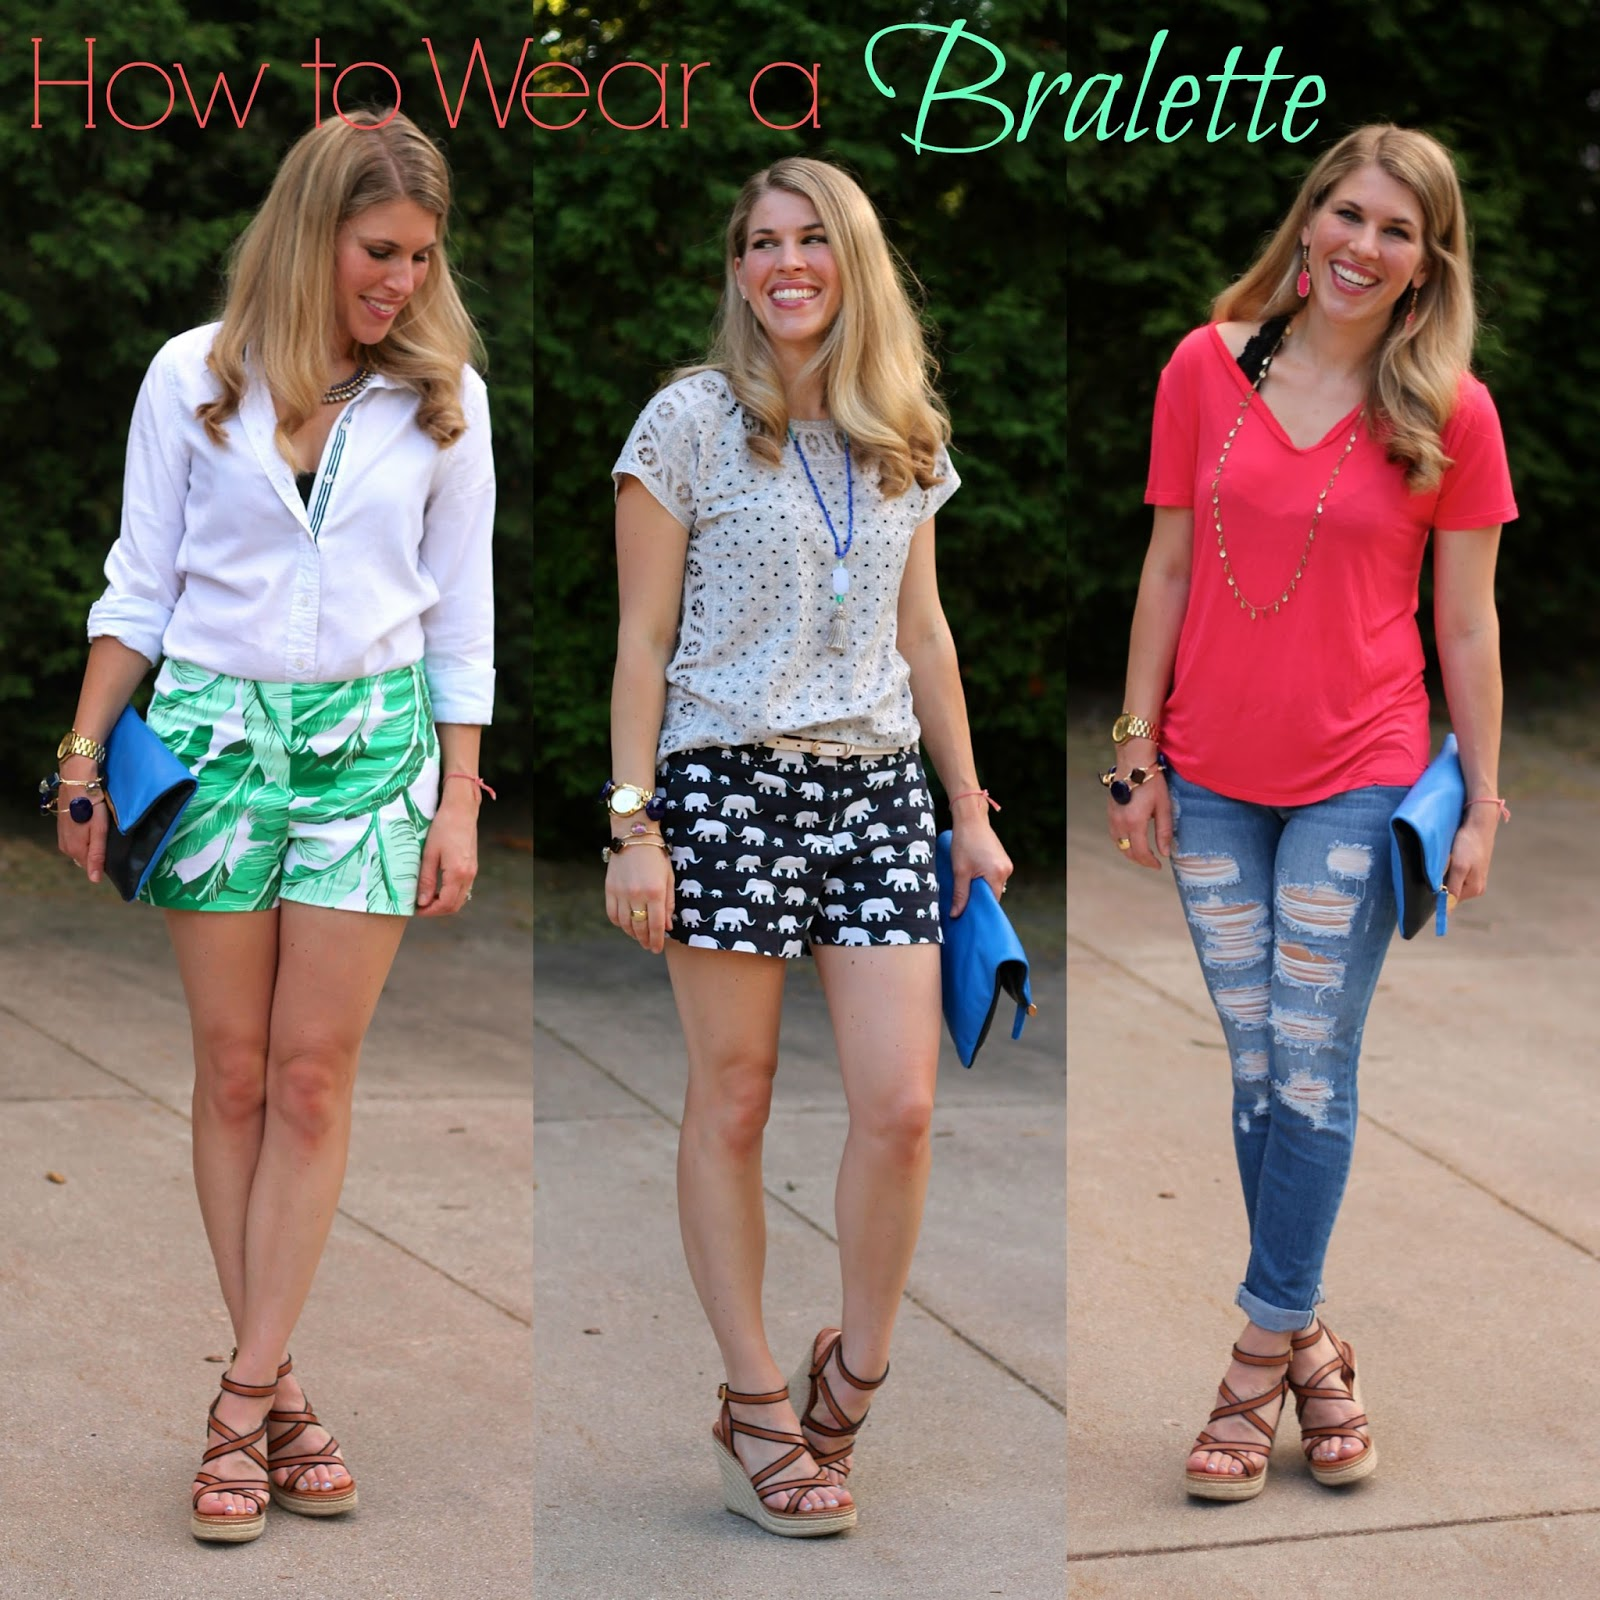 I do deClaire: 3 Ways to Wear a Bralette